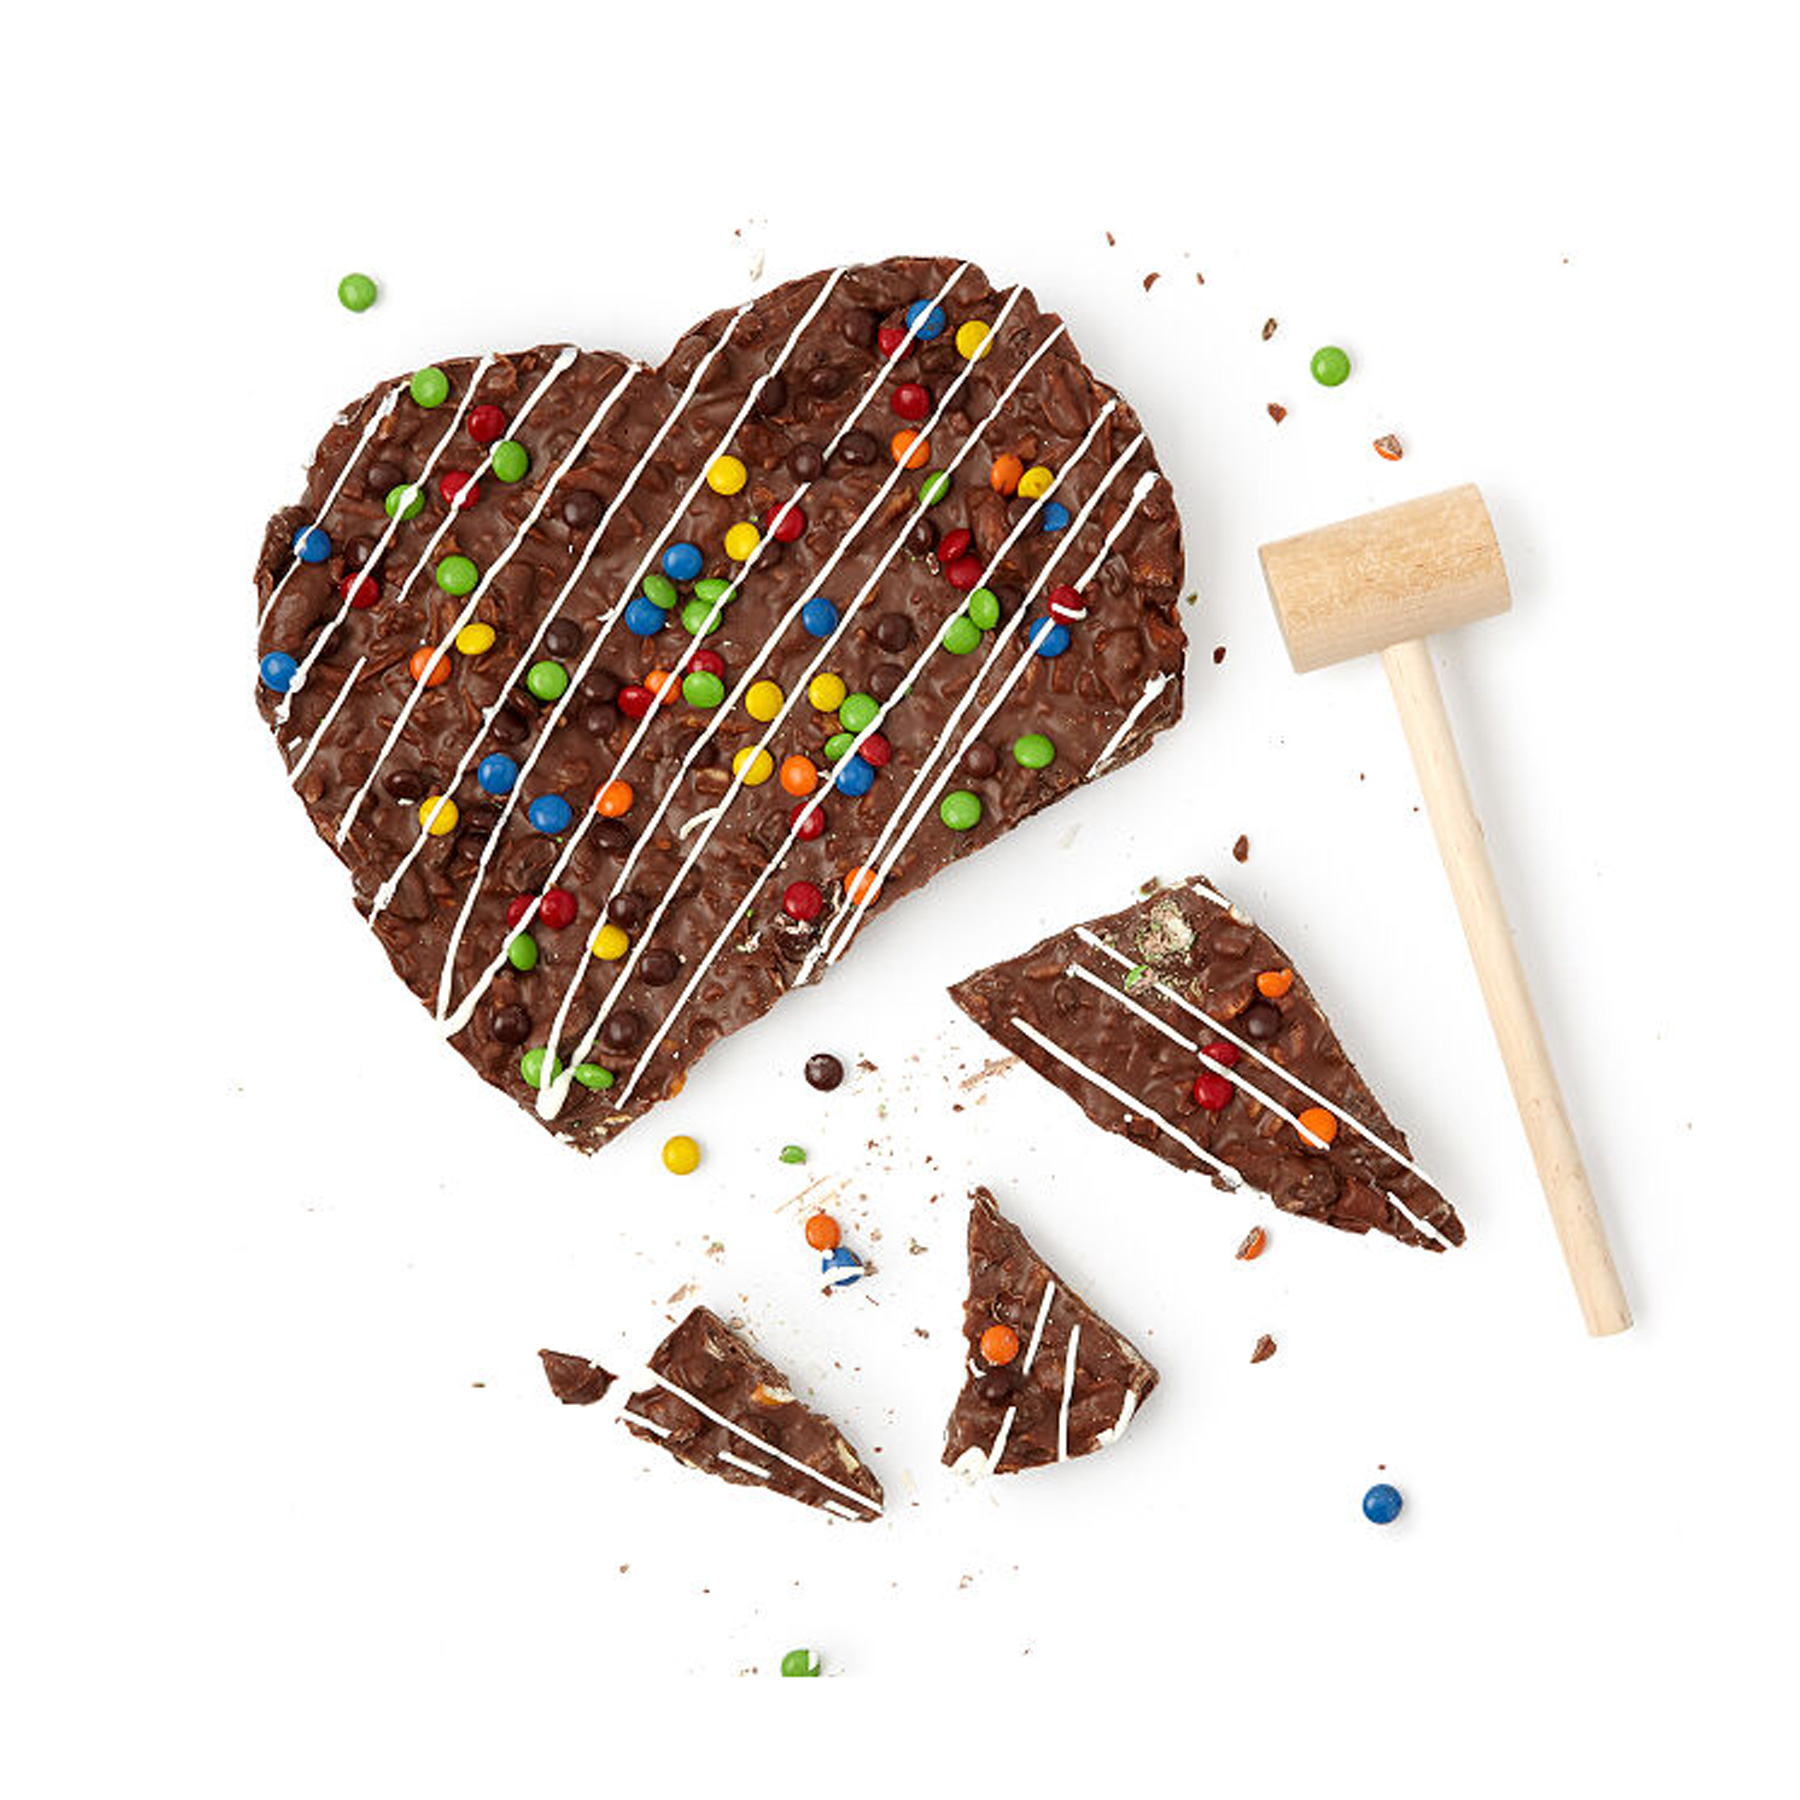 Funny Valentine's Day Gifts: Uncommon Goods broken heart chocolate heart pizza